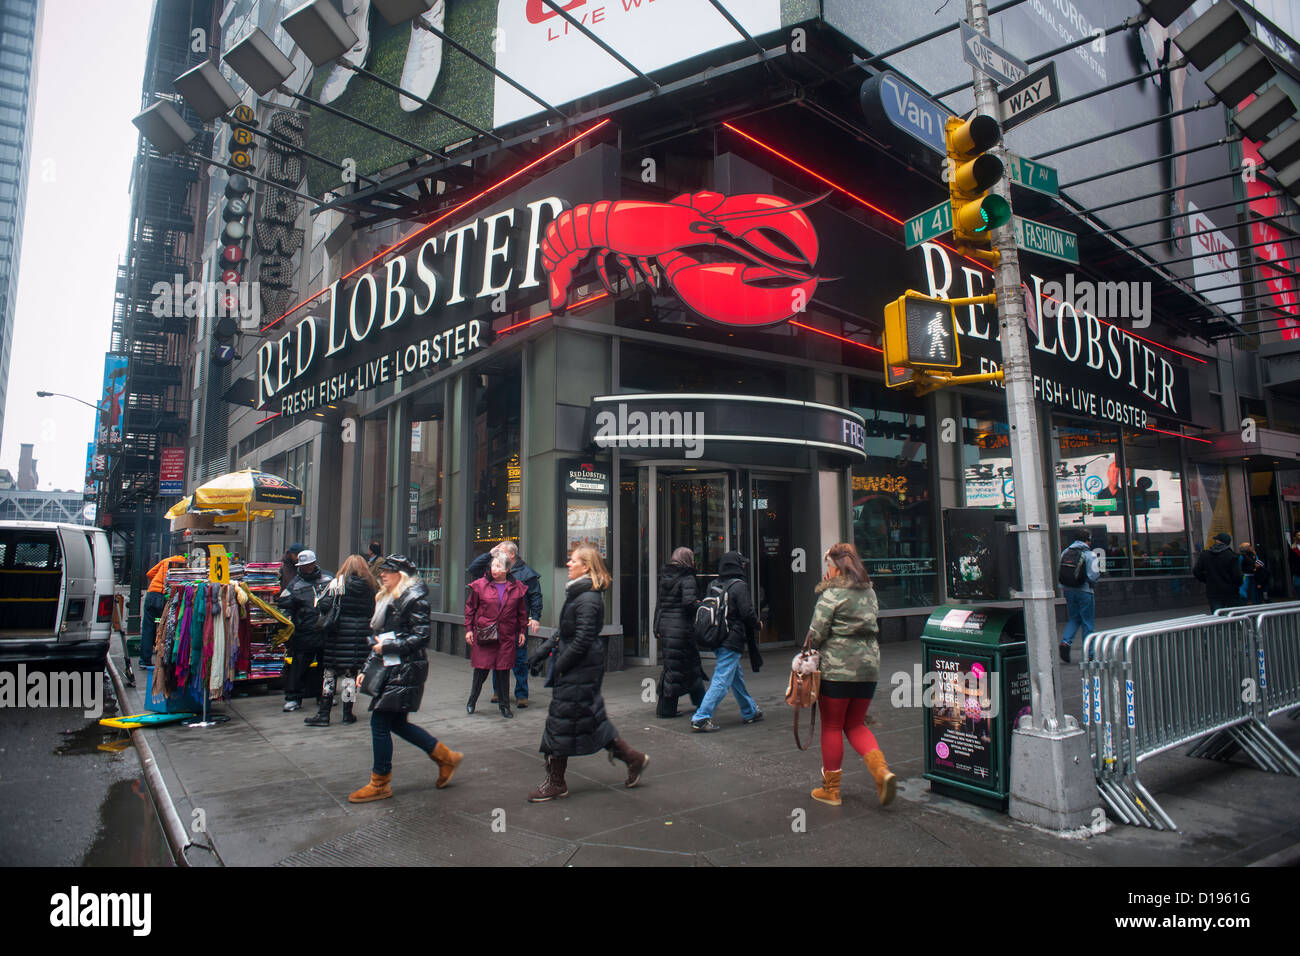 A Red Lobster Restaurant In Times Square In New York Stock Photo Royalty Fre